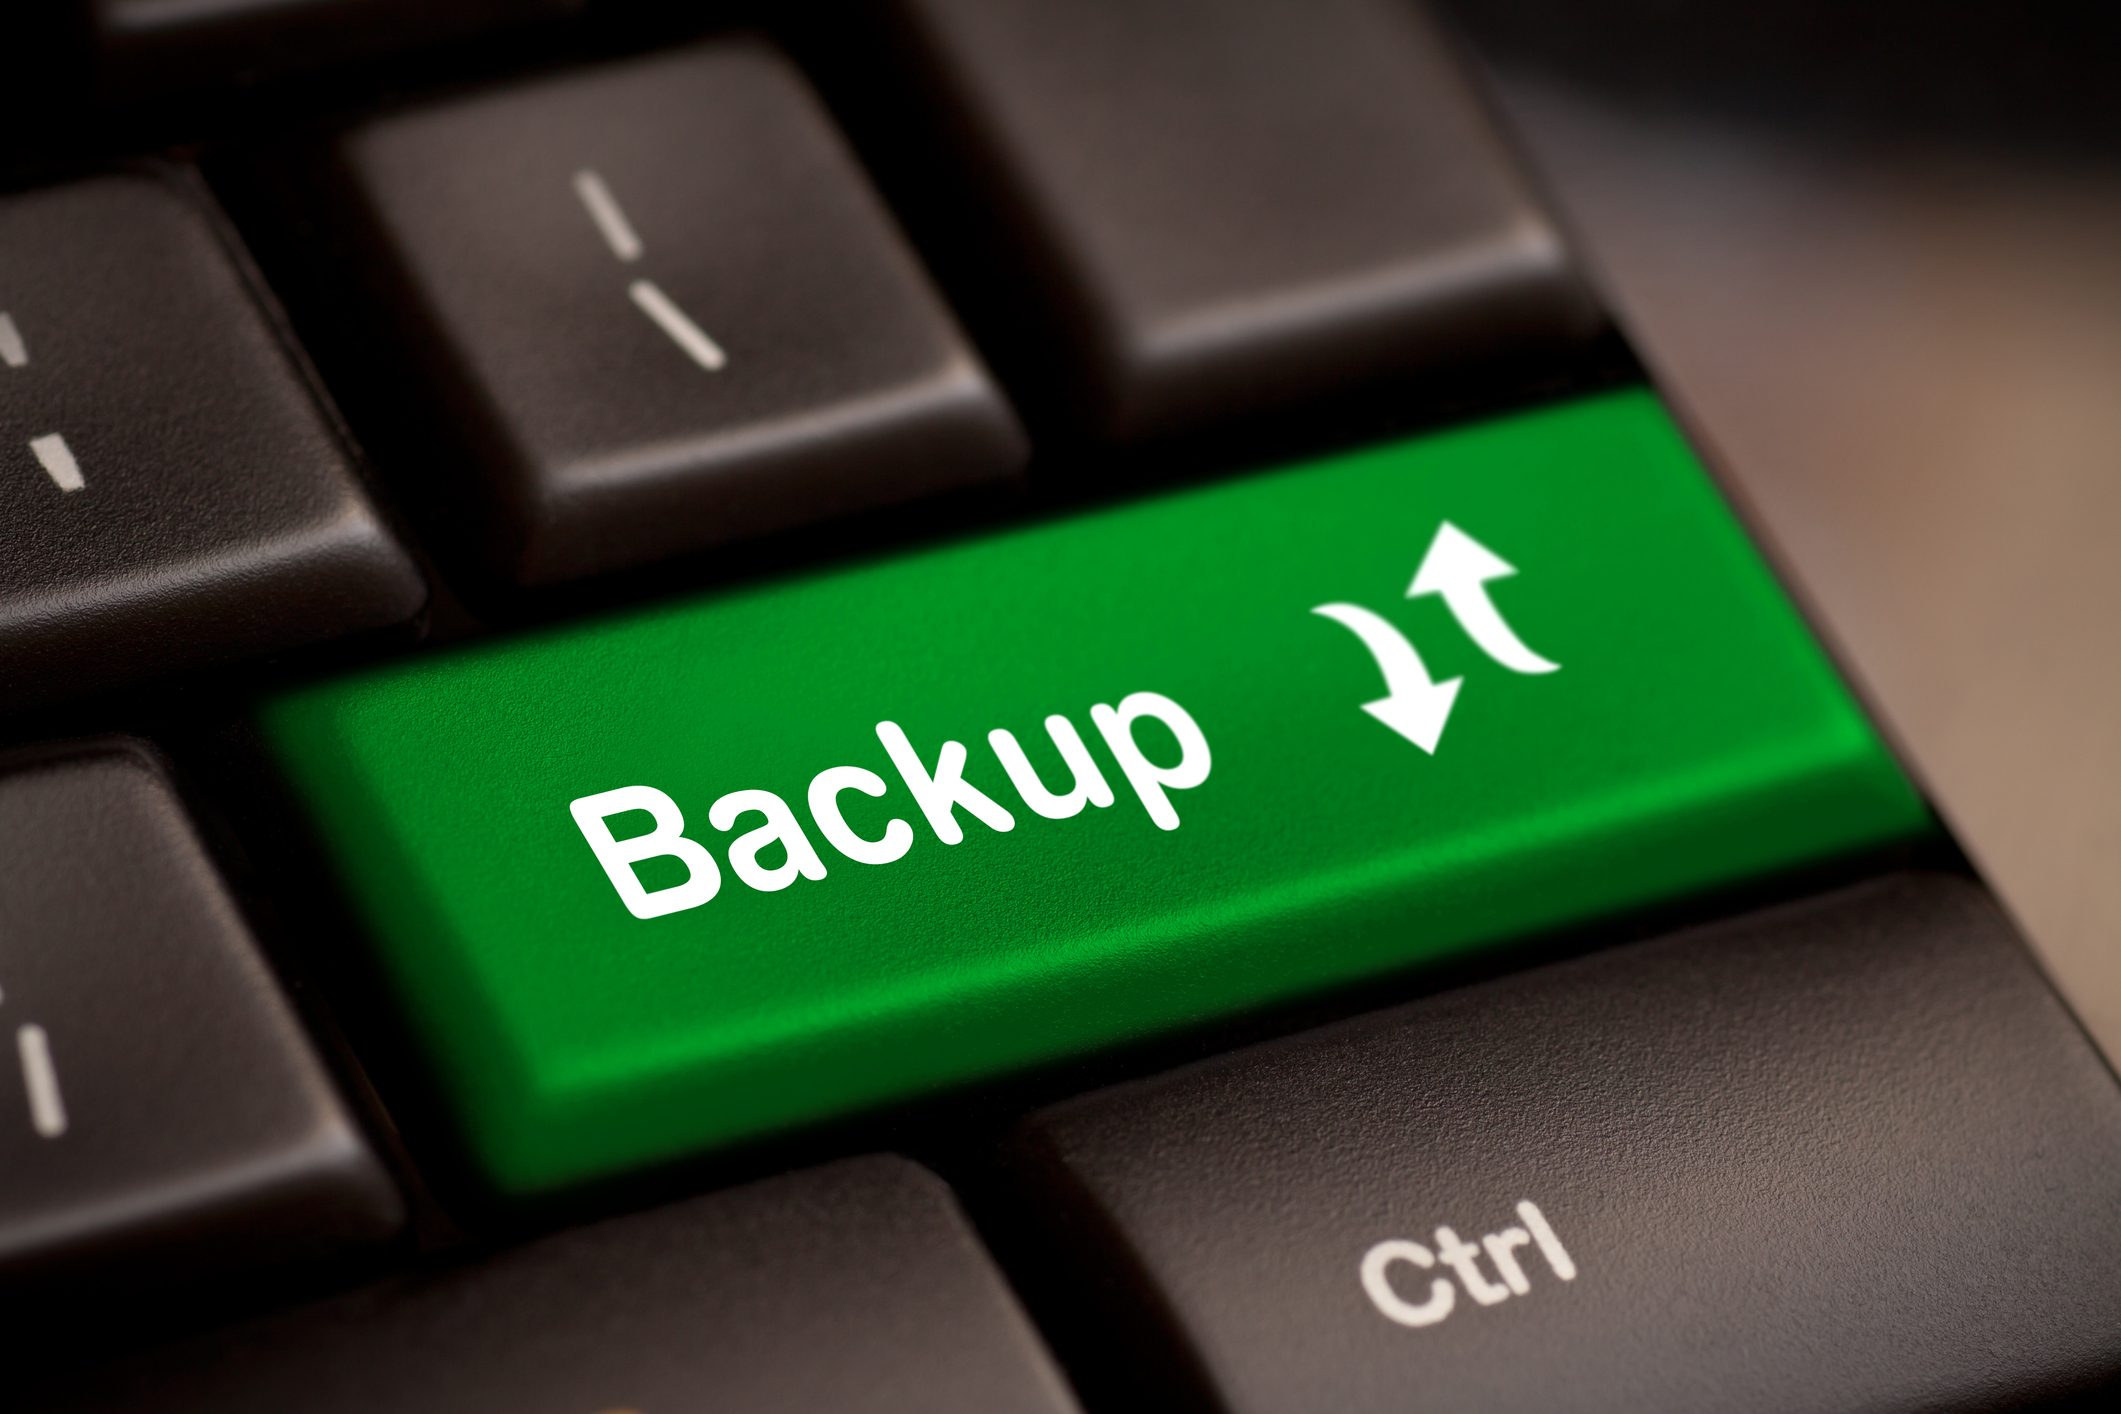 Backup Computer Key In Green For Archiving And Storage